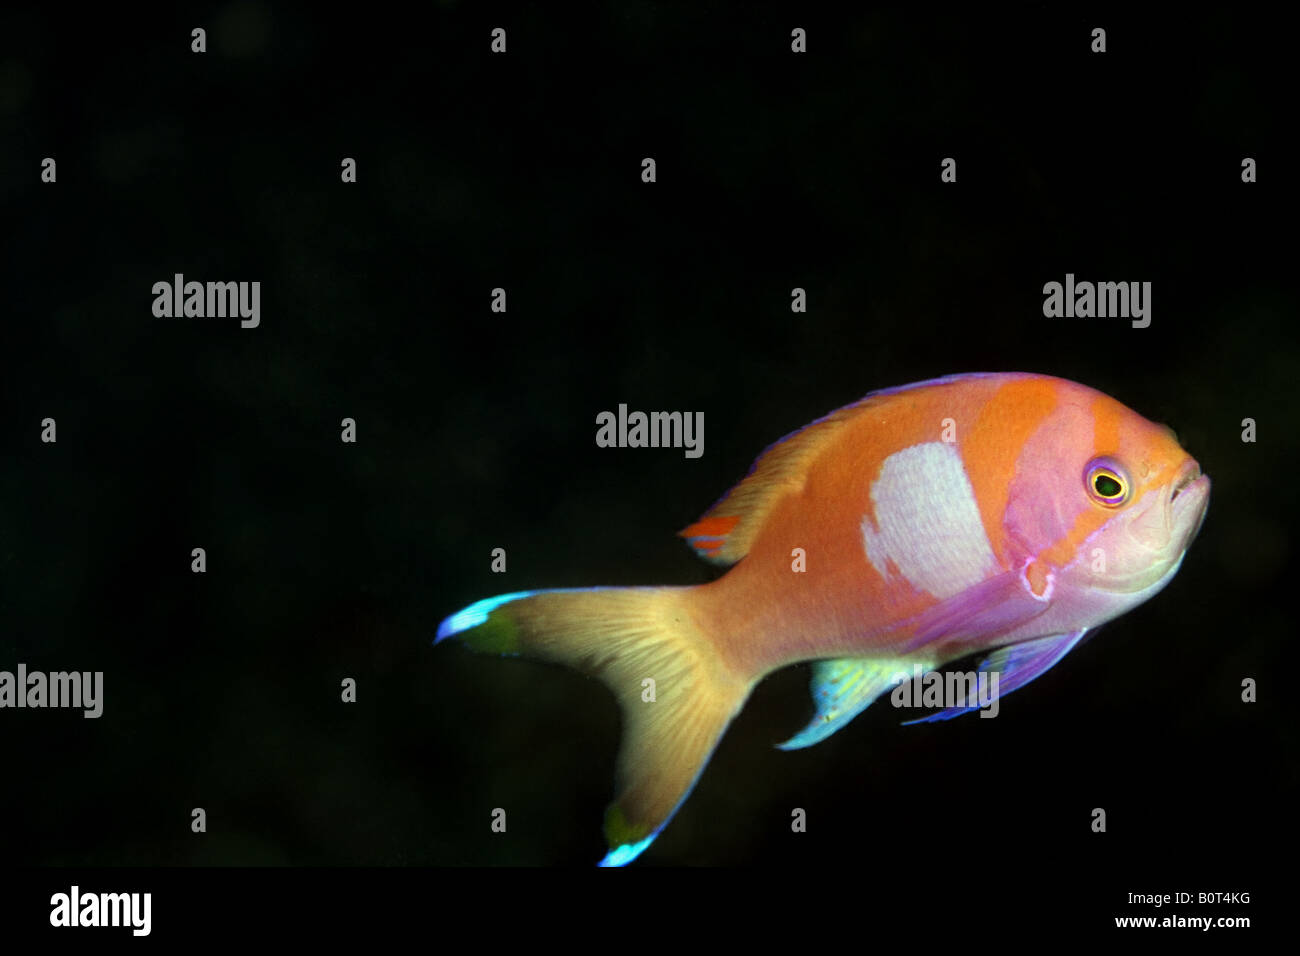 Red pink and purple anthias with a big purple square in the middle of its body under water - Stock Image